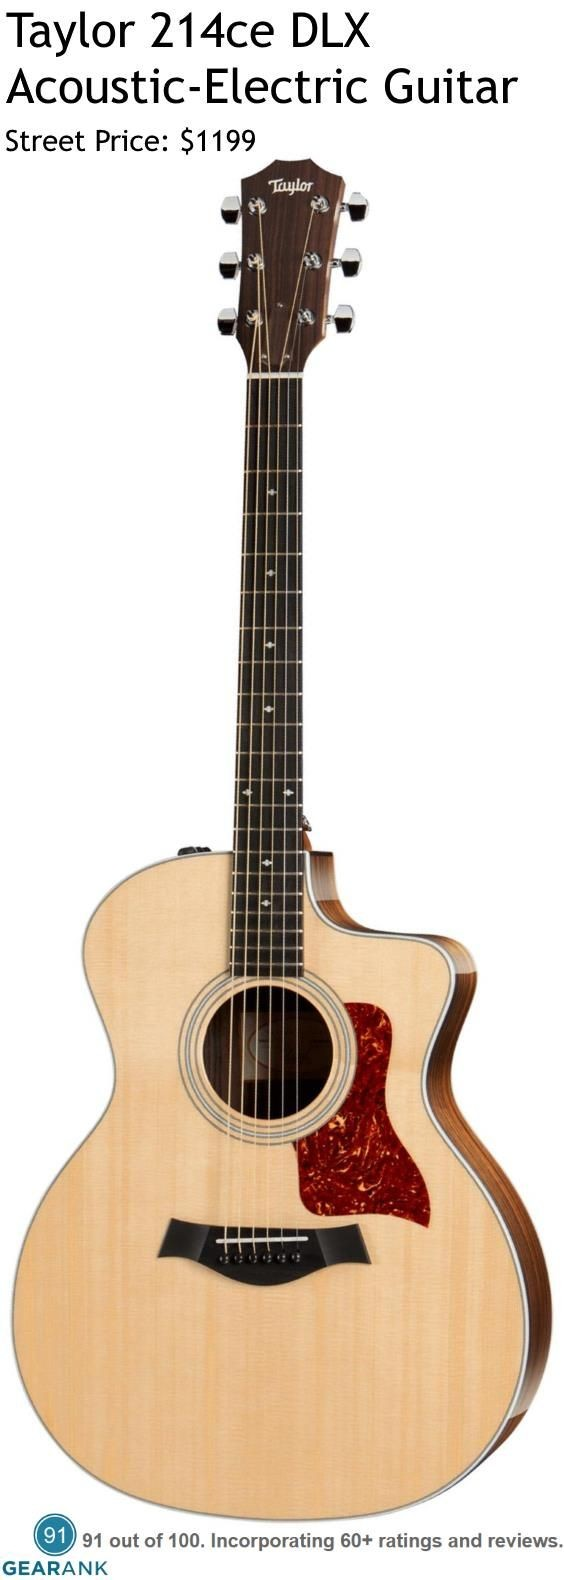 Taylor 214ce DLX Acoustic Electric Guitar It has a solid Sitka spruce top along